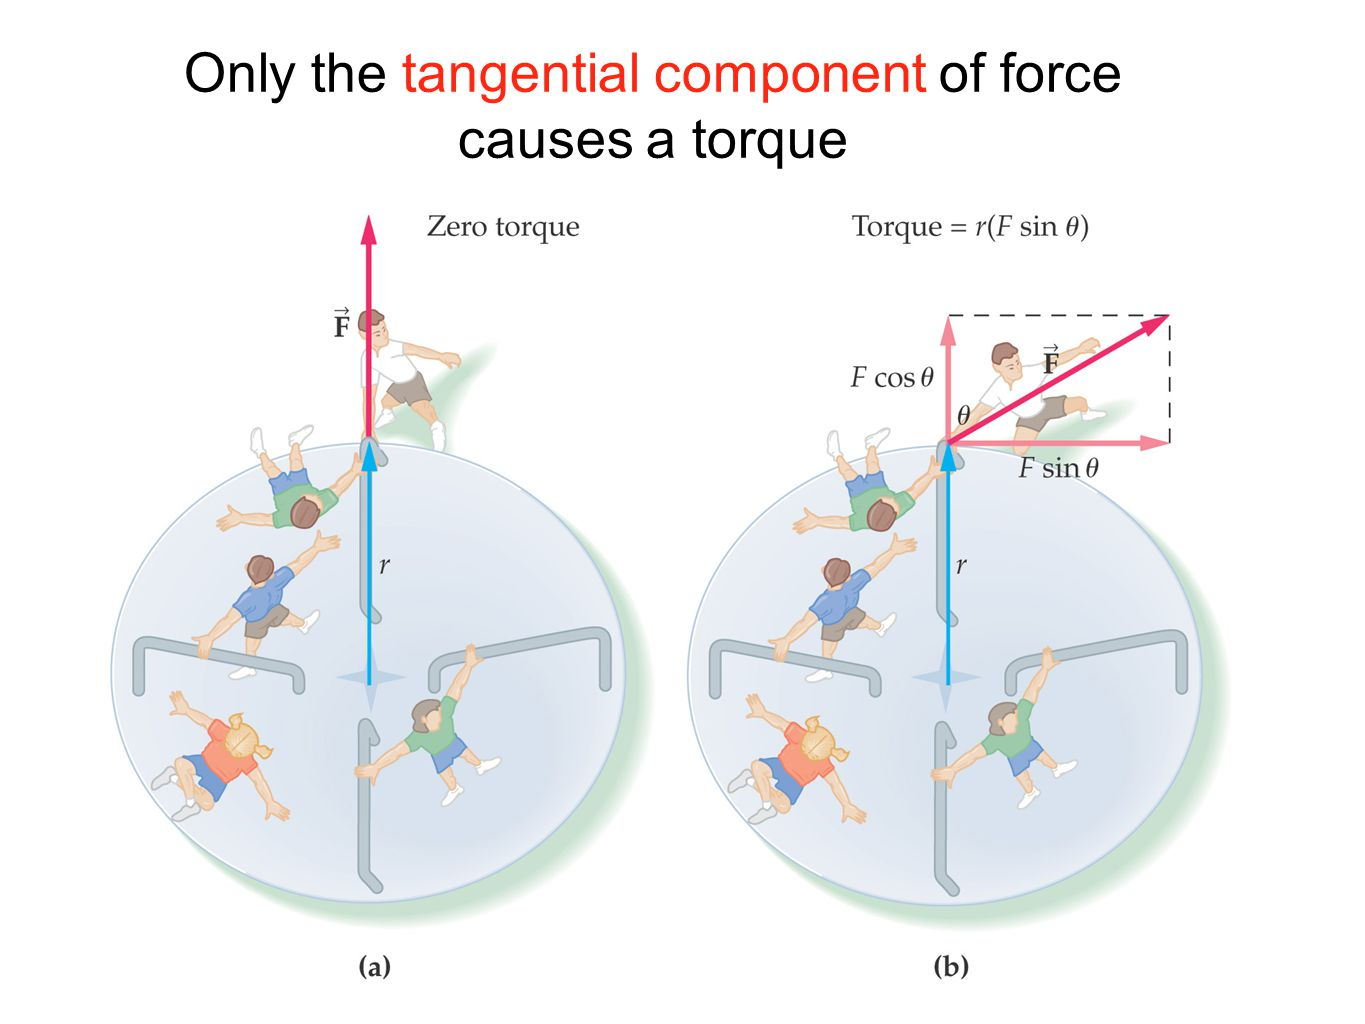 Only the tangential component of force causes a torque